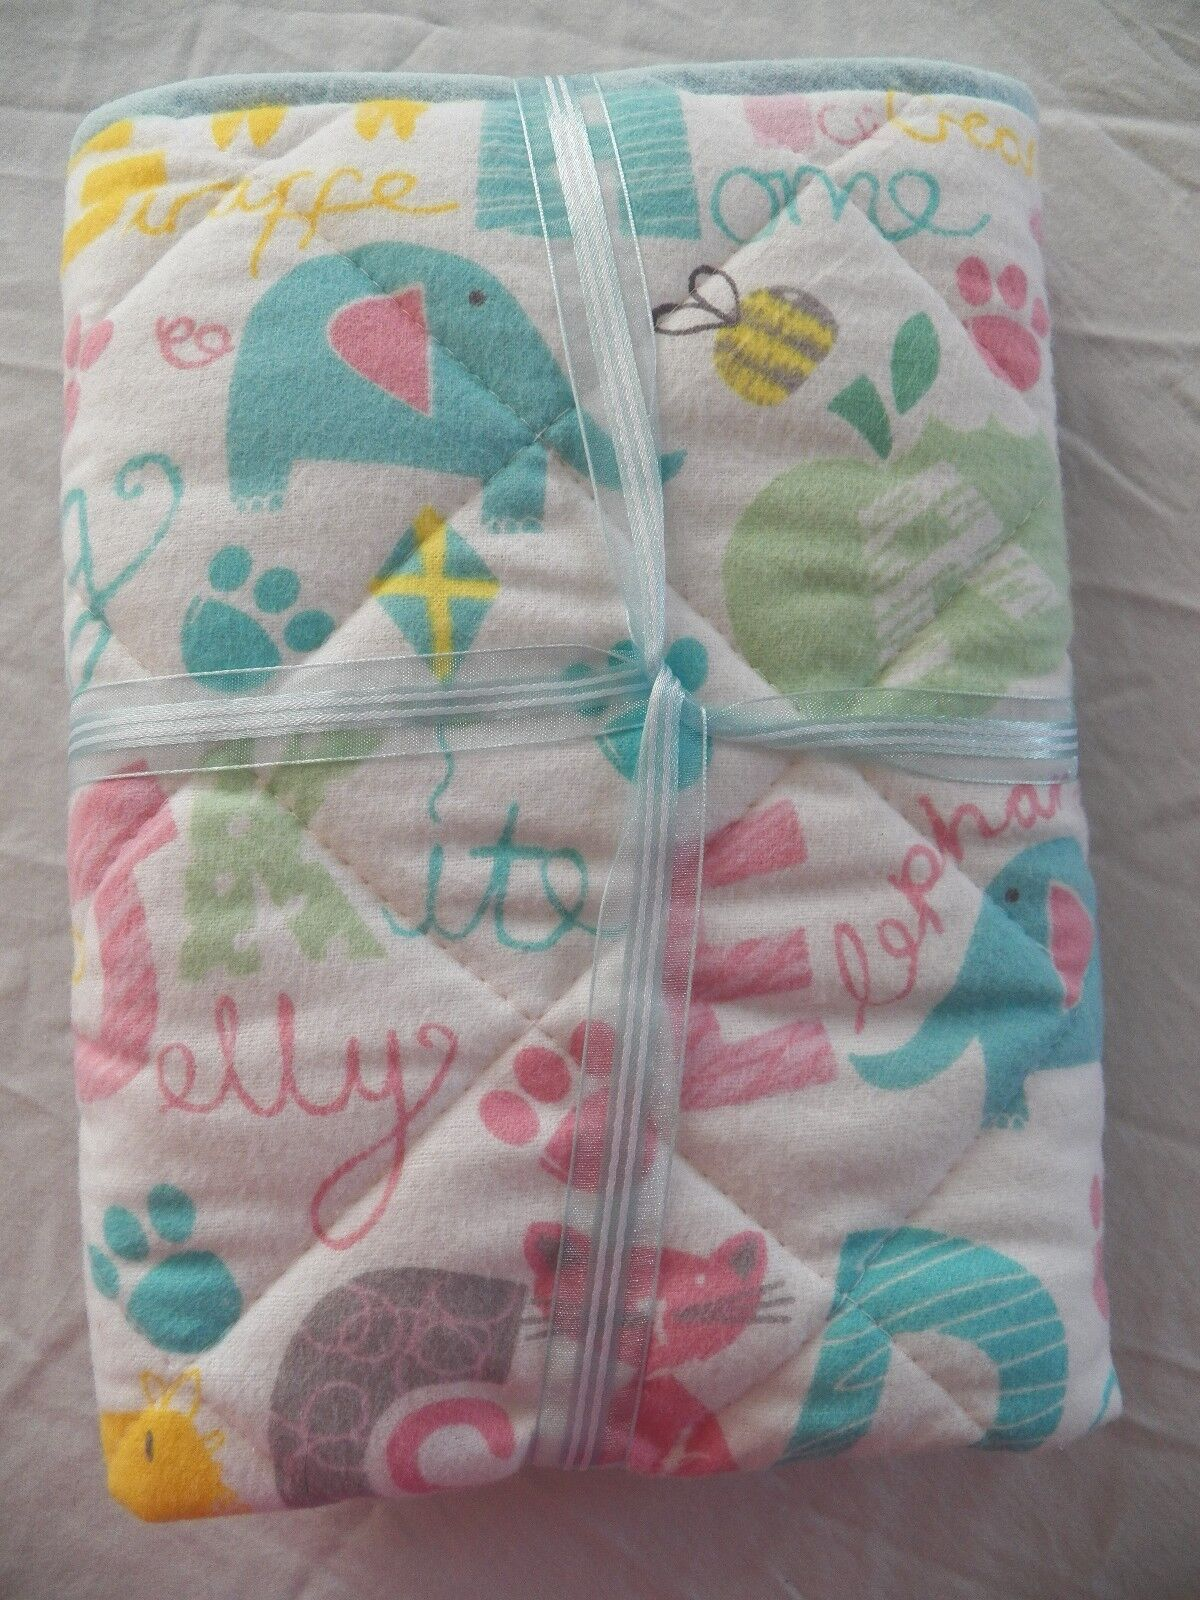 BABY CHANGING PAD Portable Diaper Travel Mat Cotton Washable Padded Handmade NEW 3